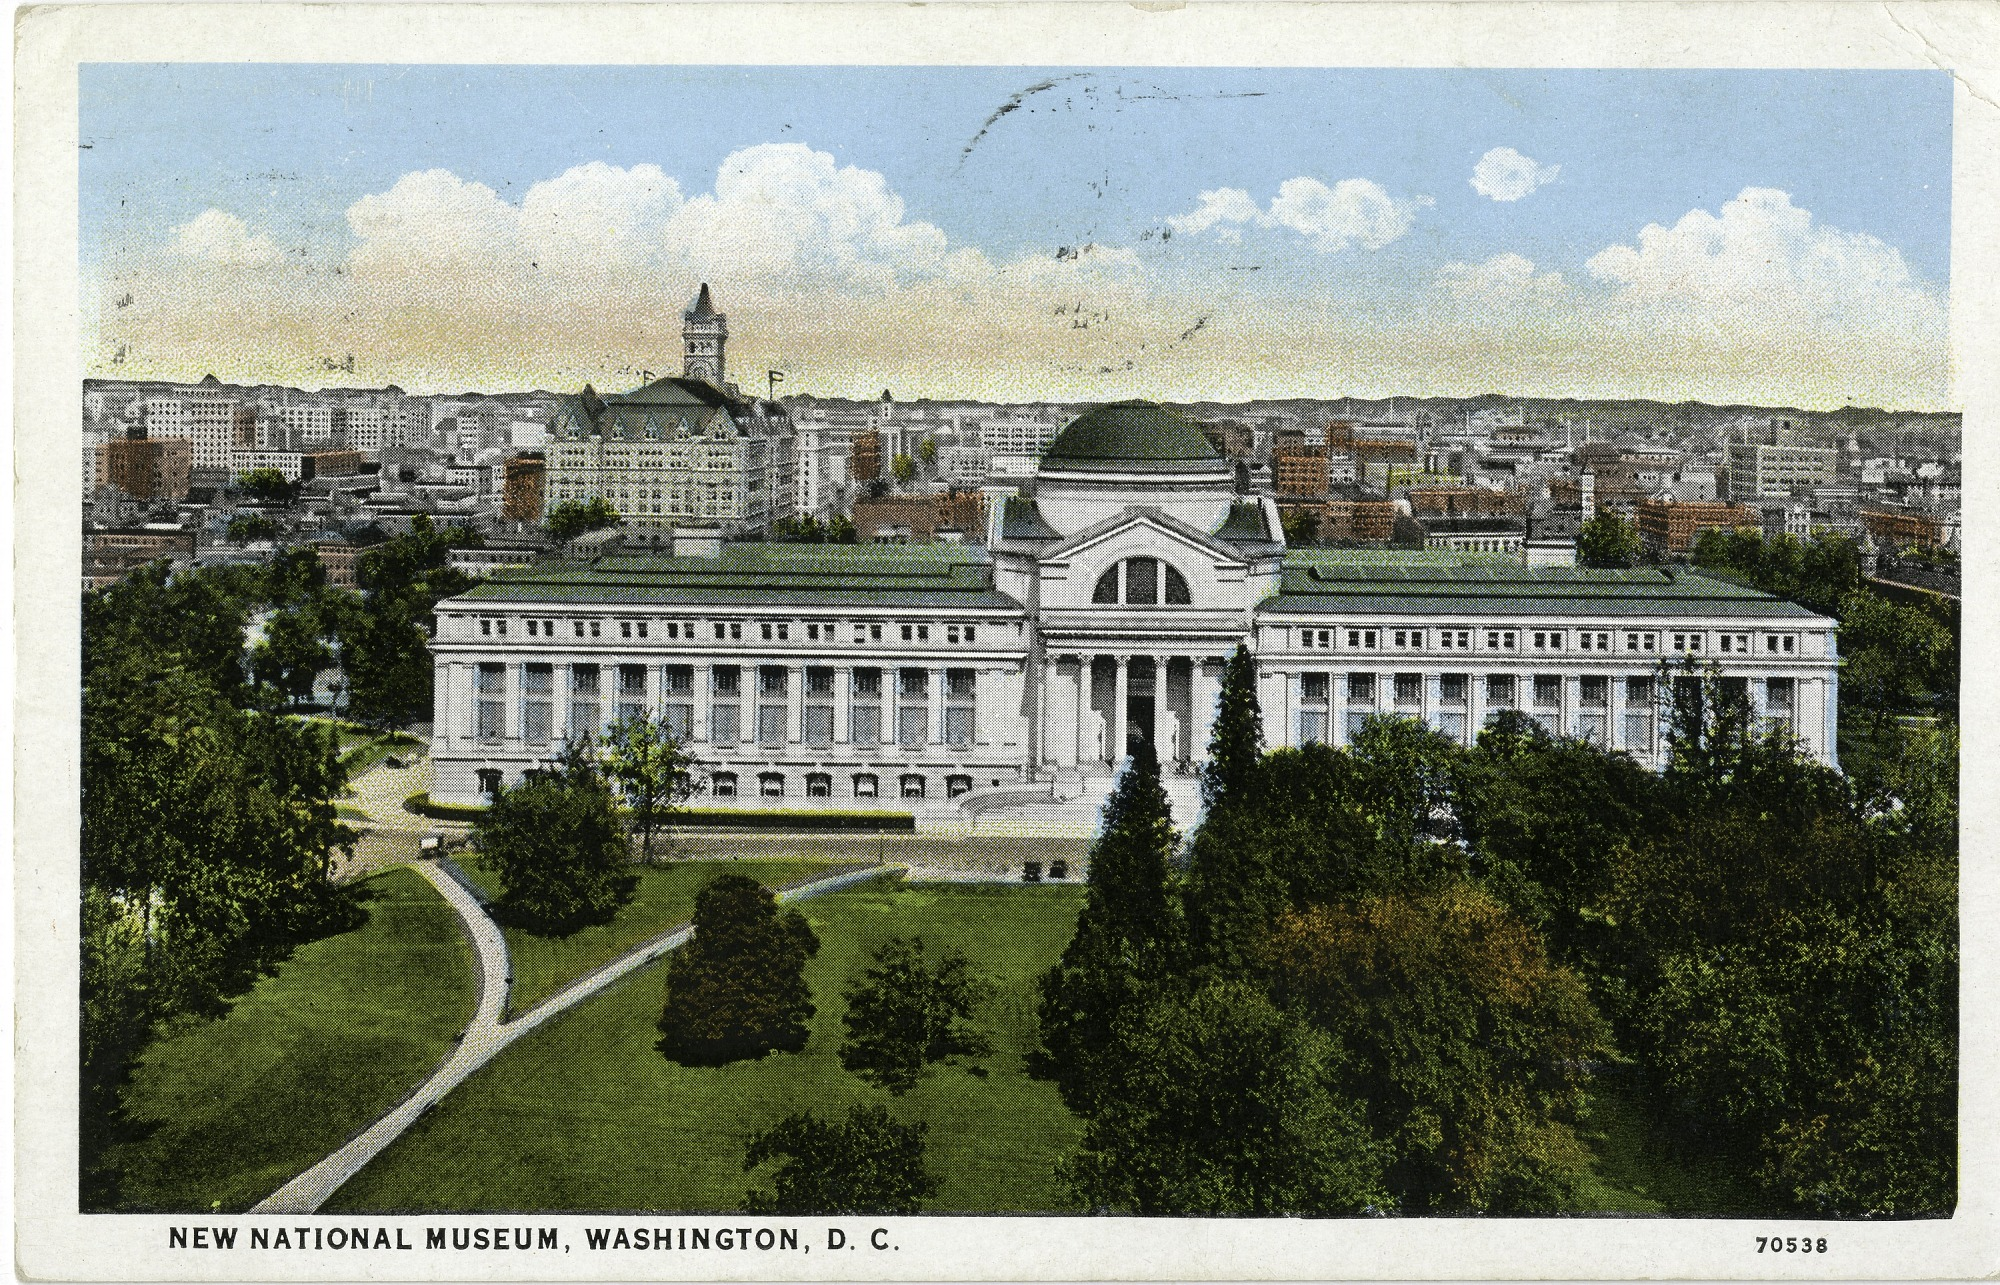 Postcard of New National Museum and DC